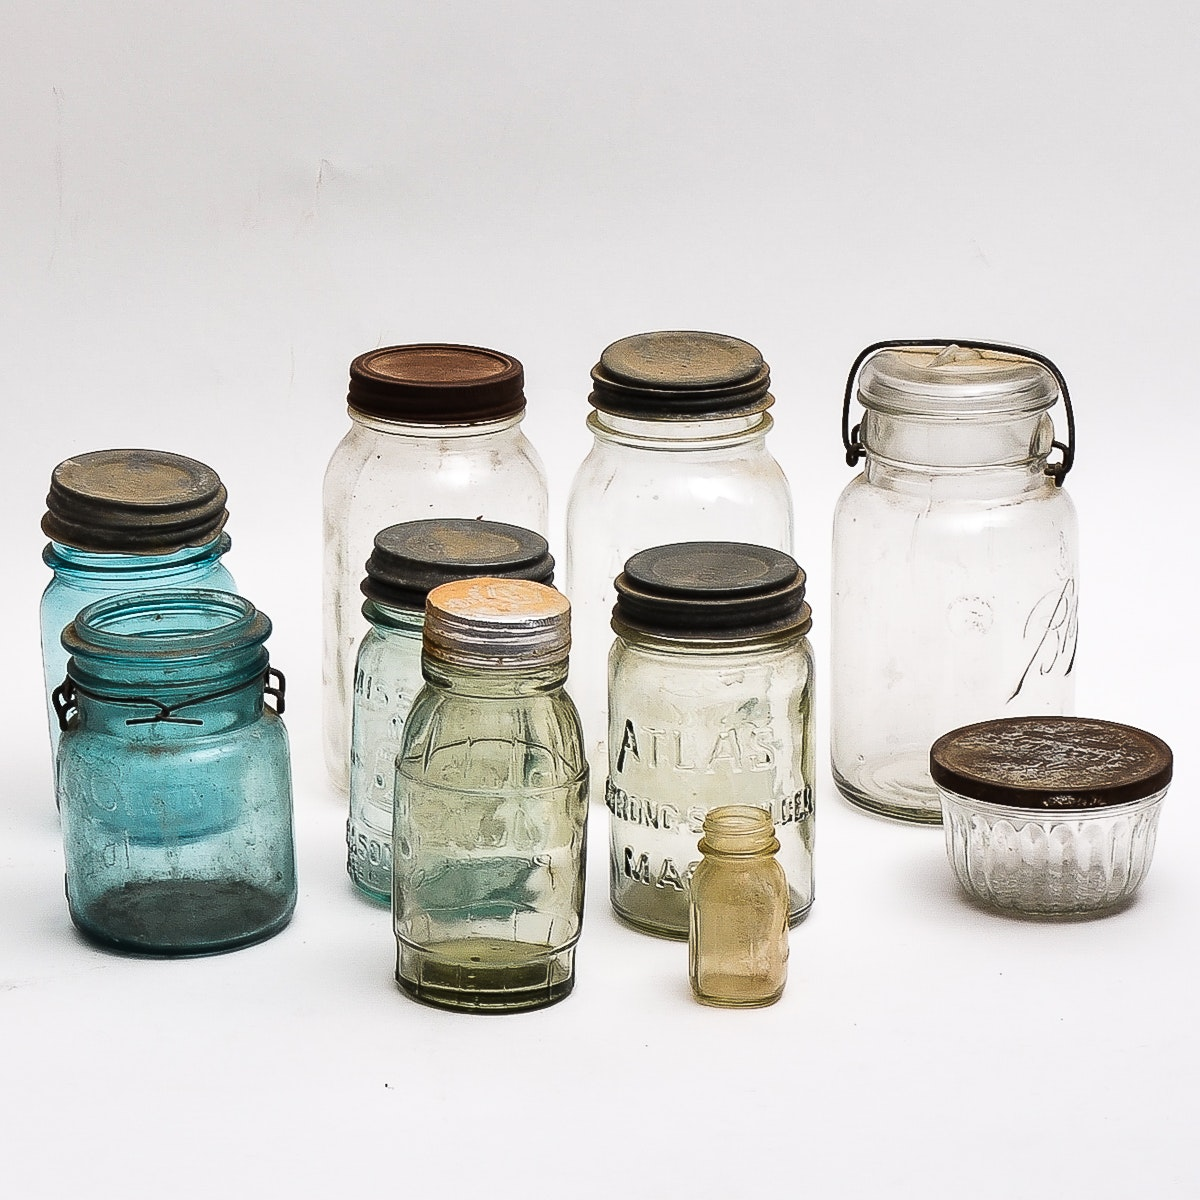 Collection of Antique Glass Jars